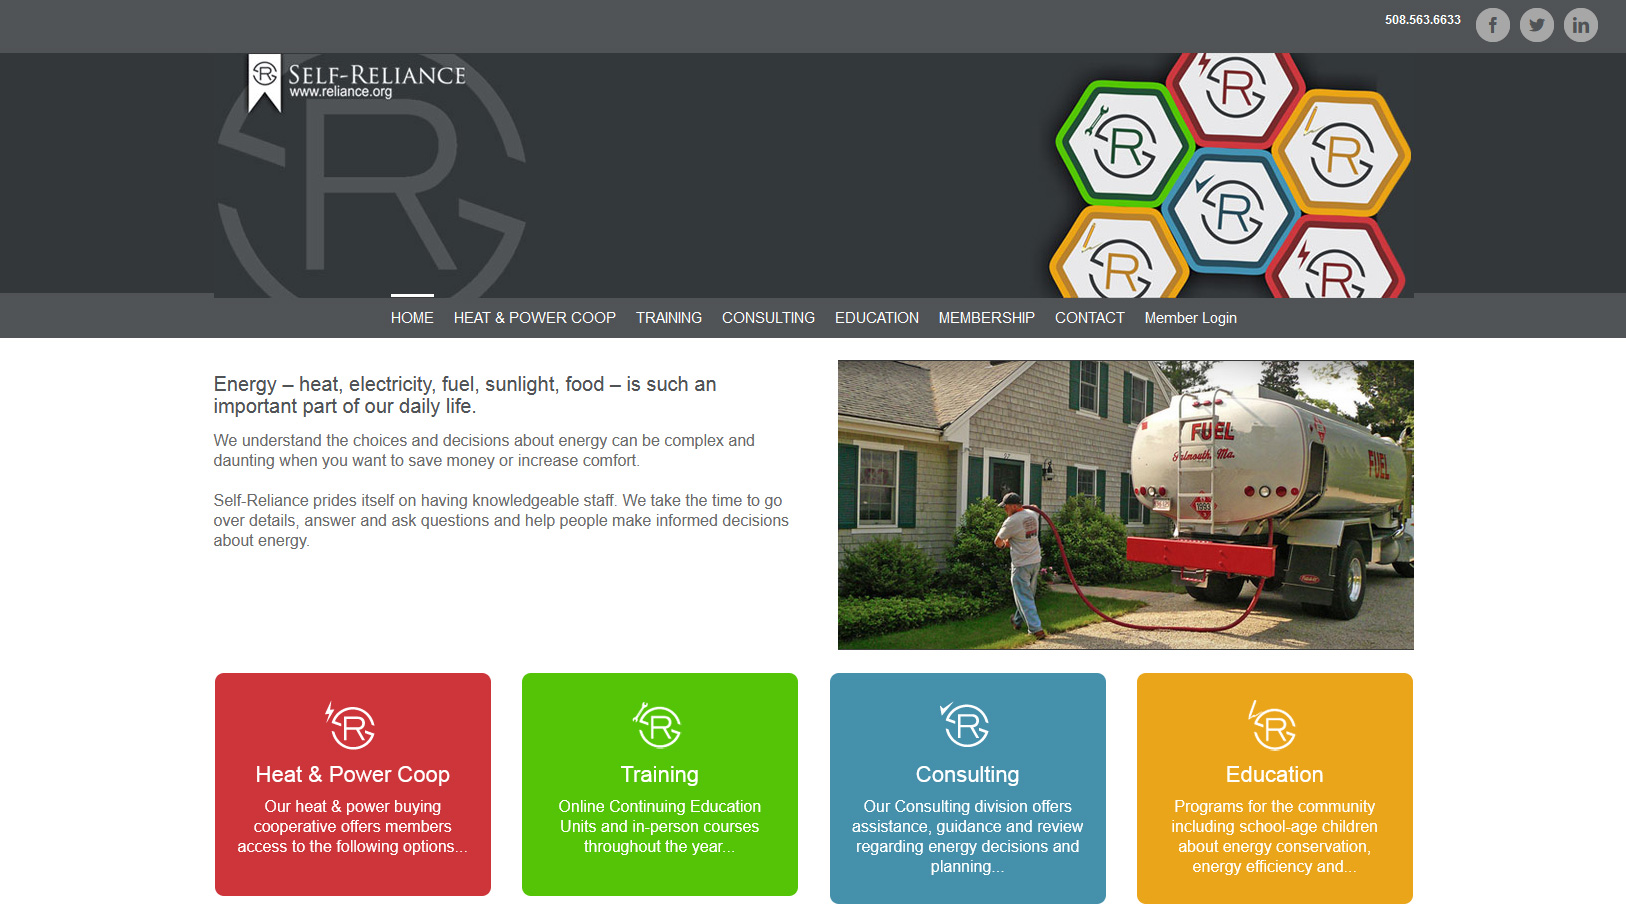 Portfolio Self Reliance website design